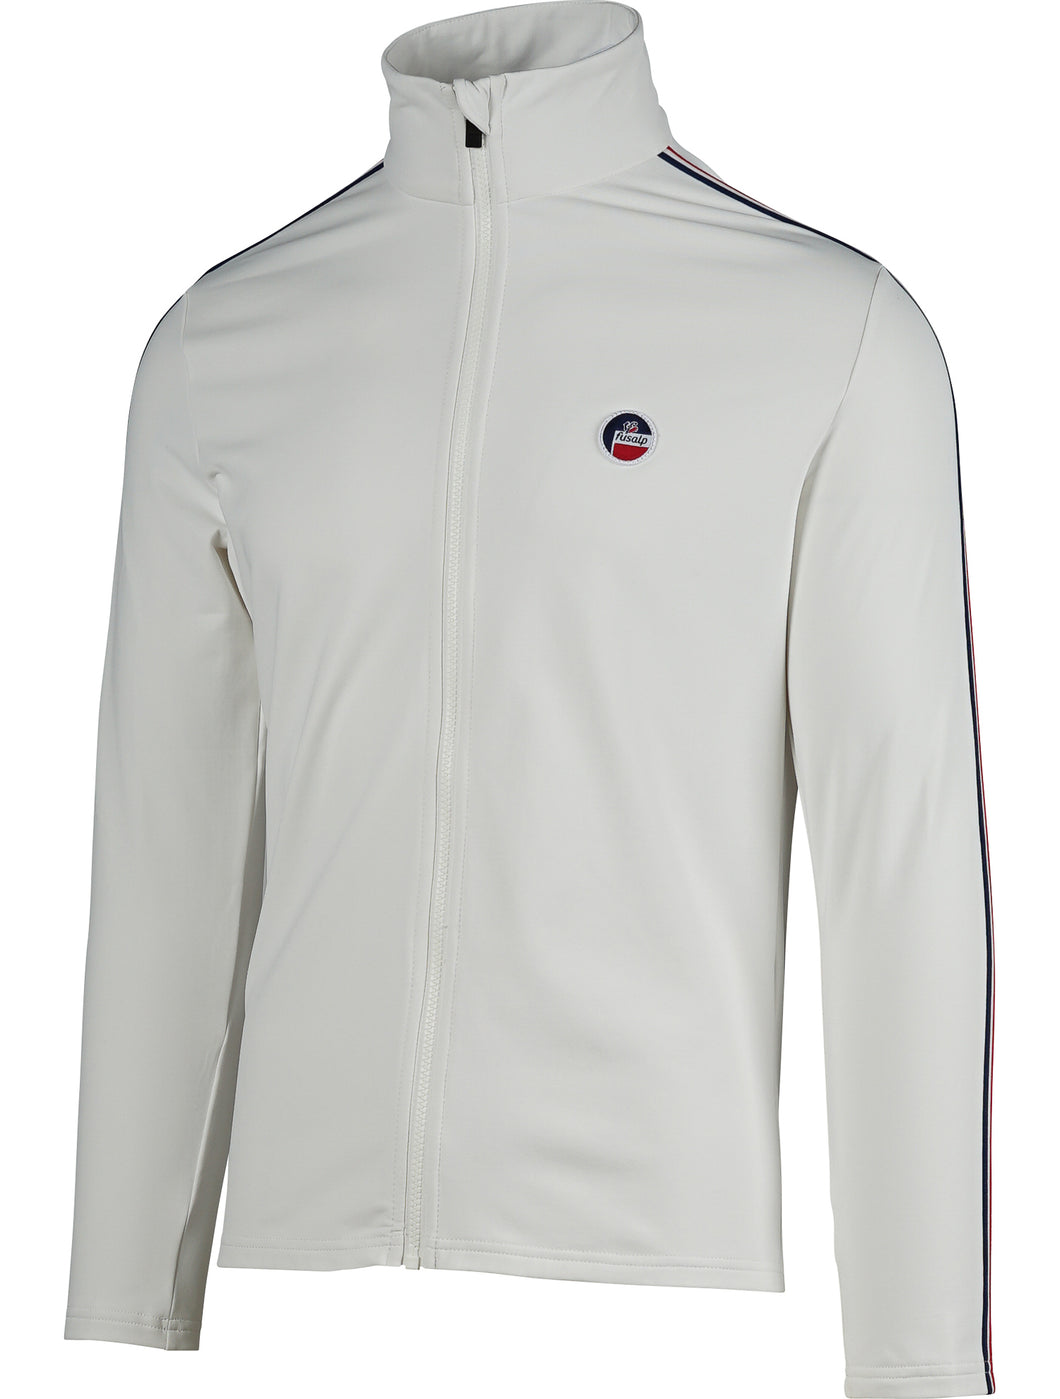 Mario Zip up Fleece Lined Layer - White